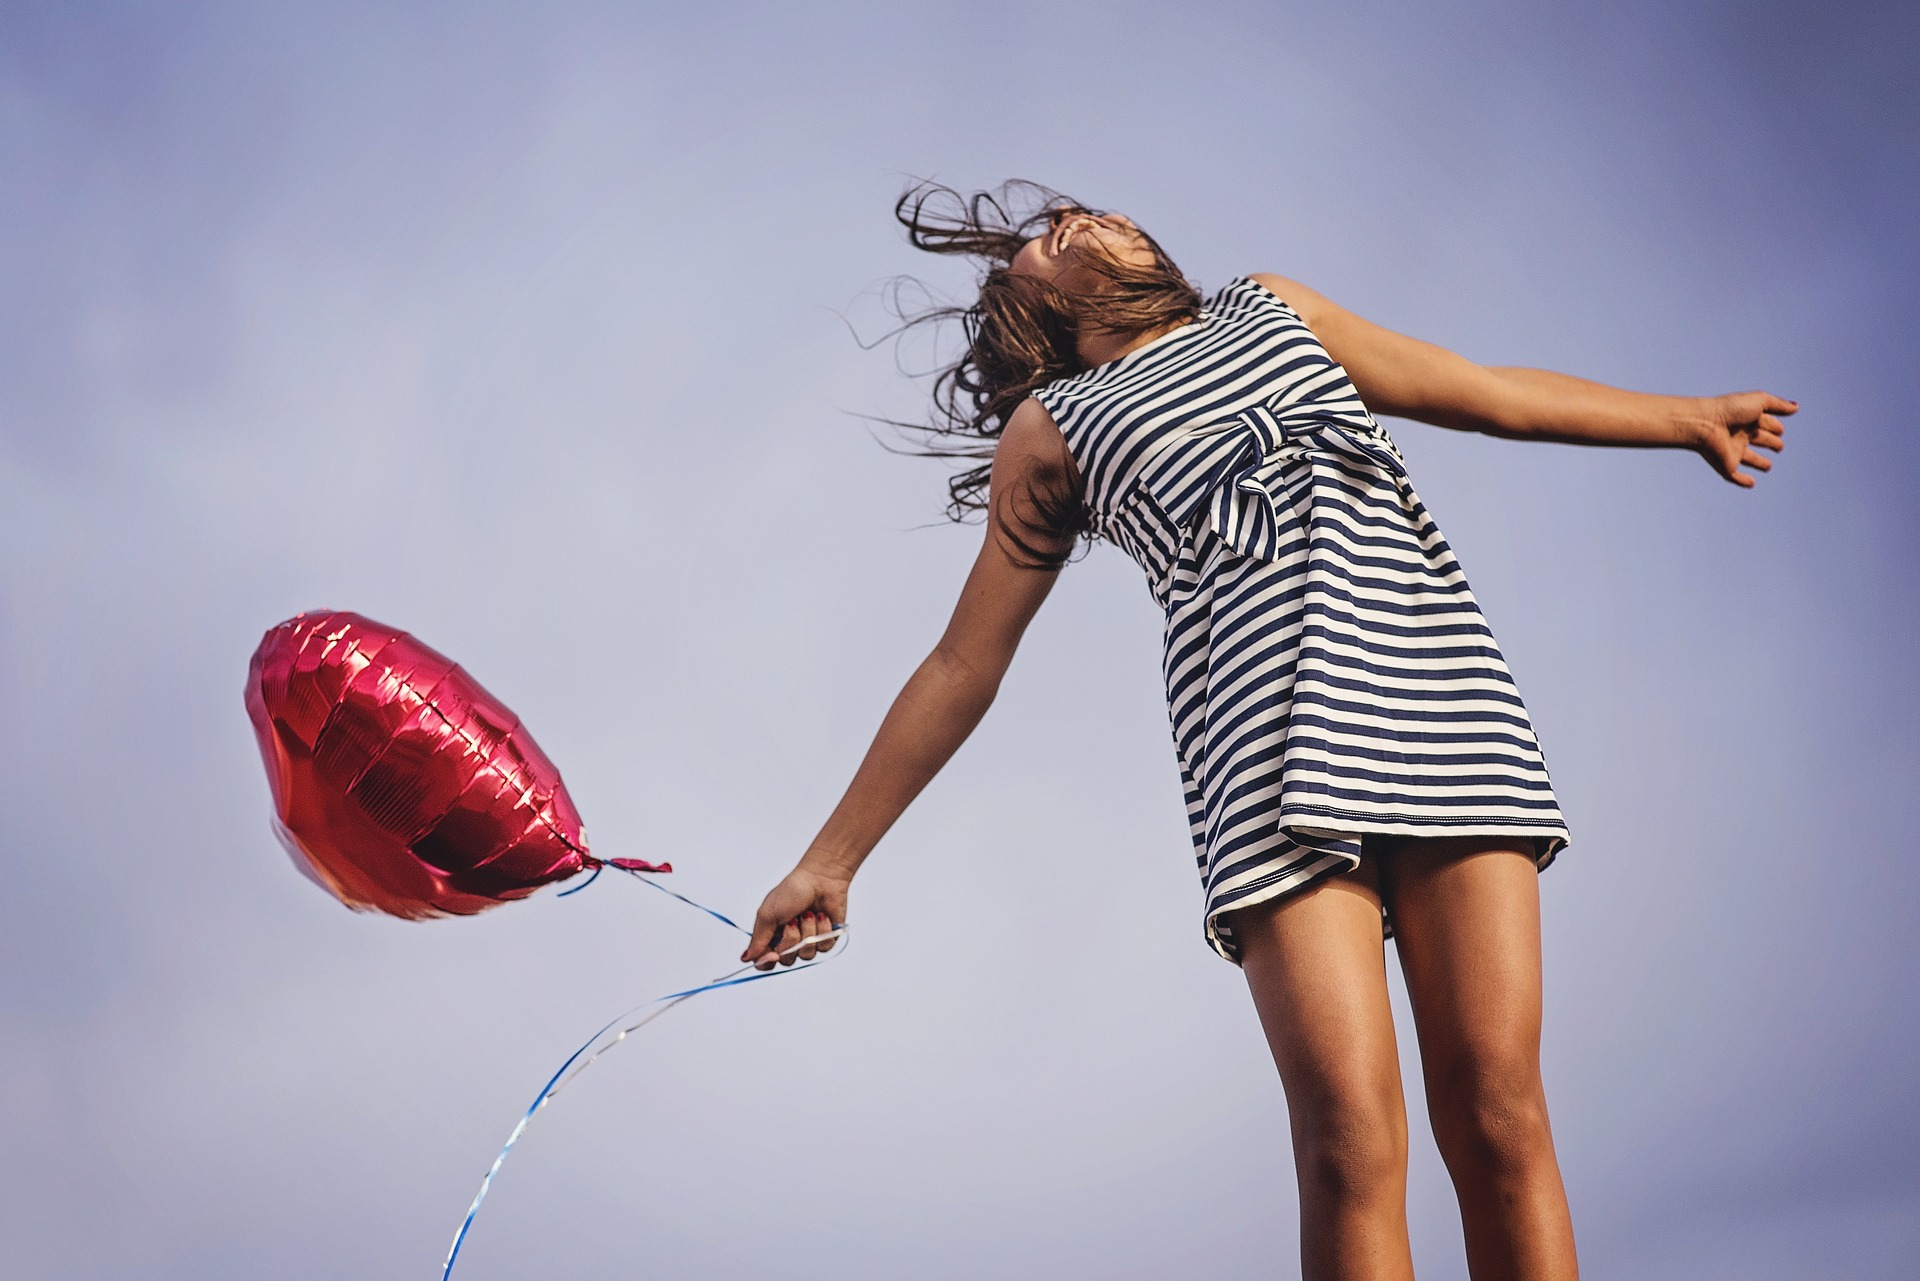 Woman Jumping with Heart Balloon